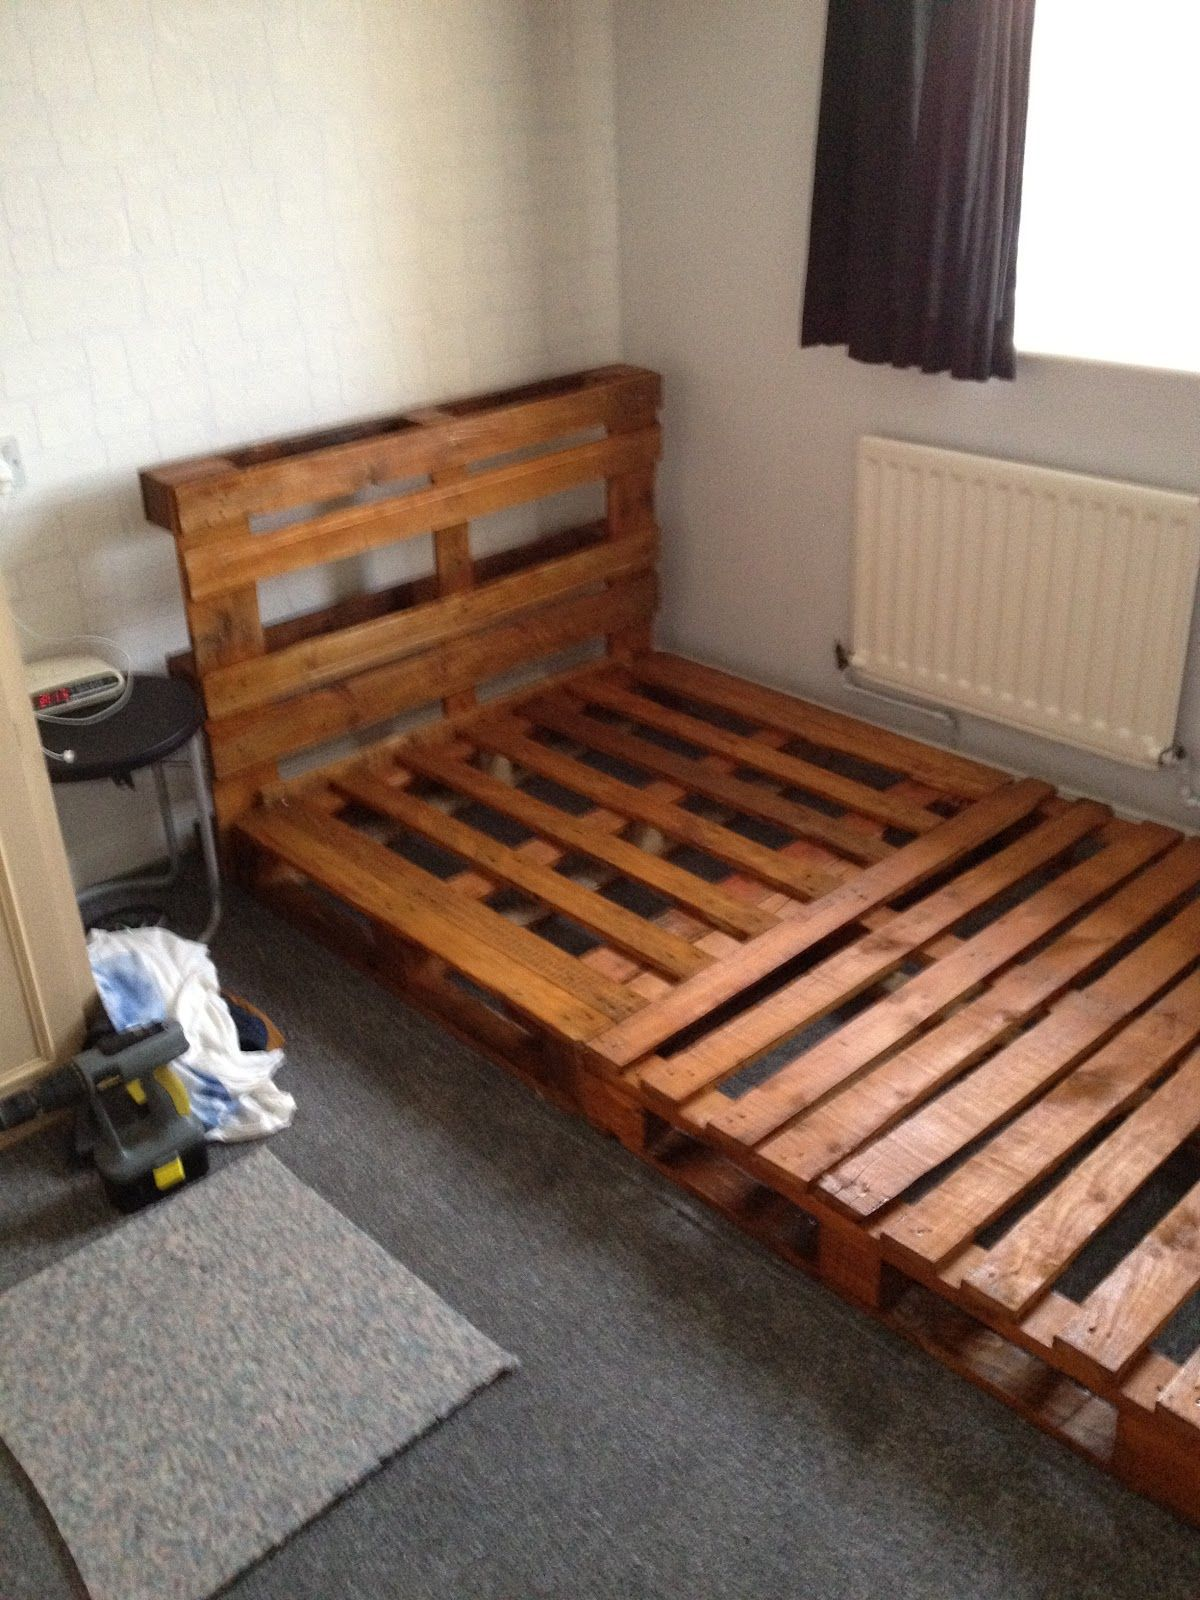 Loft beds for kids diy  DIY day bed out of pallets  Step  Add accessories and finishing